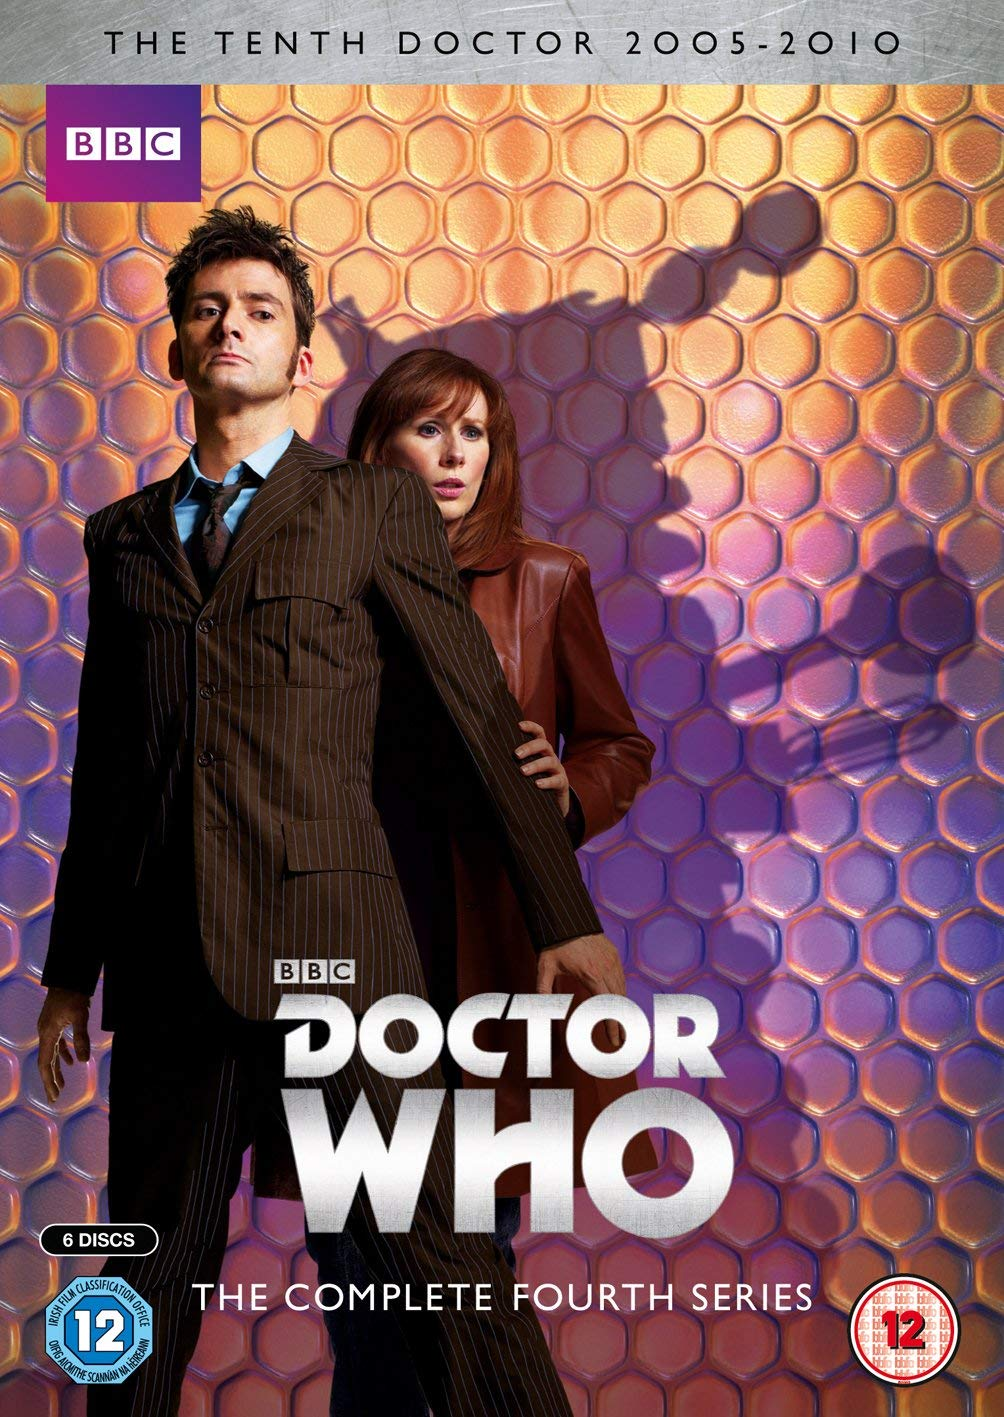 Doctor Who The Complete Fourth Series Repackaged